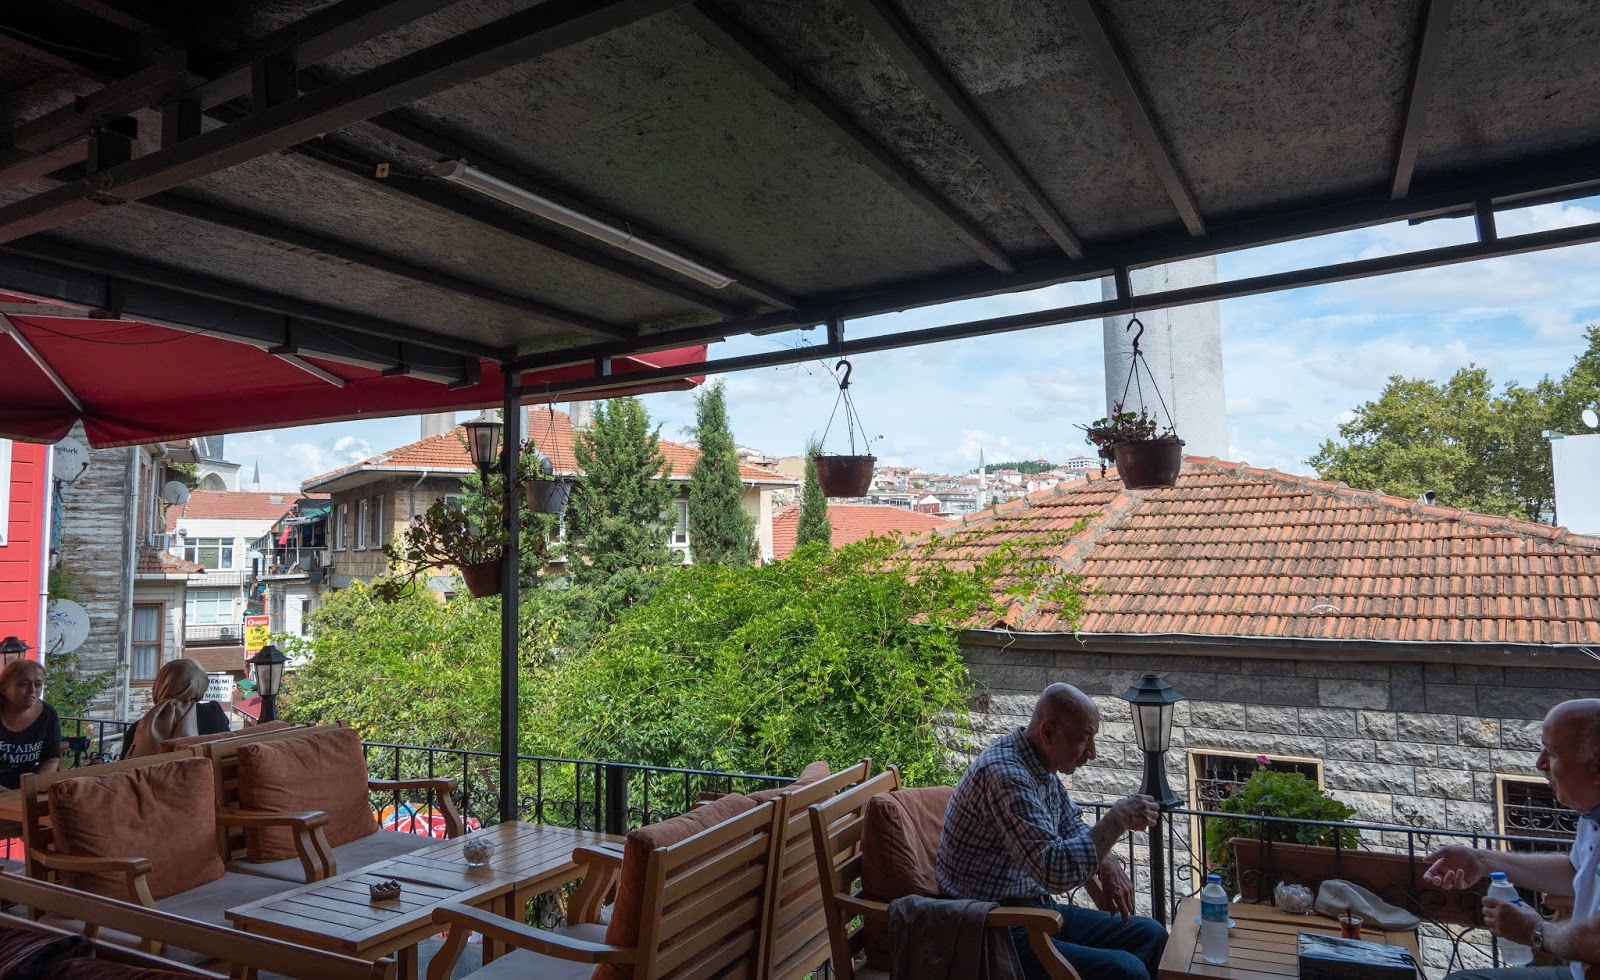 Eating lunch on the Asian side of Istanbul, Turkey